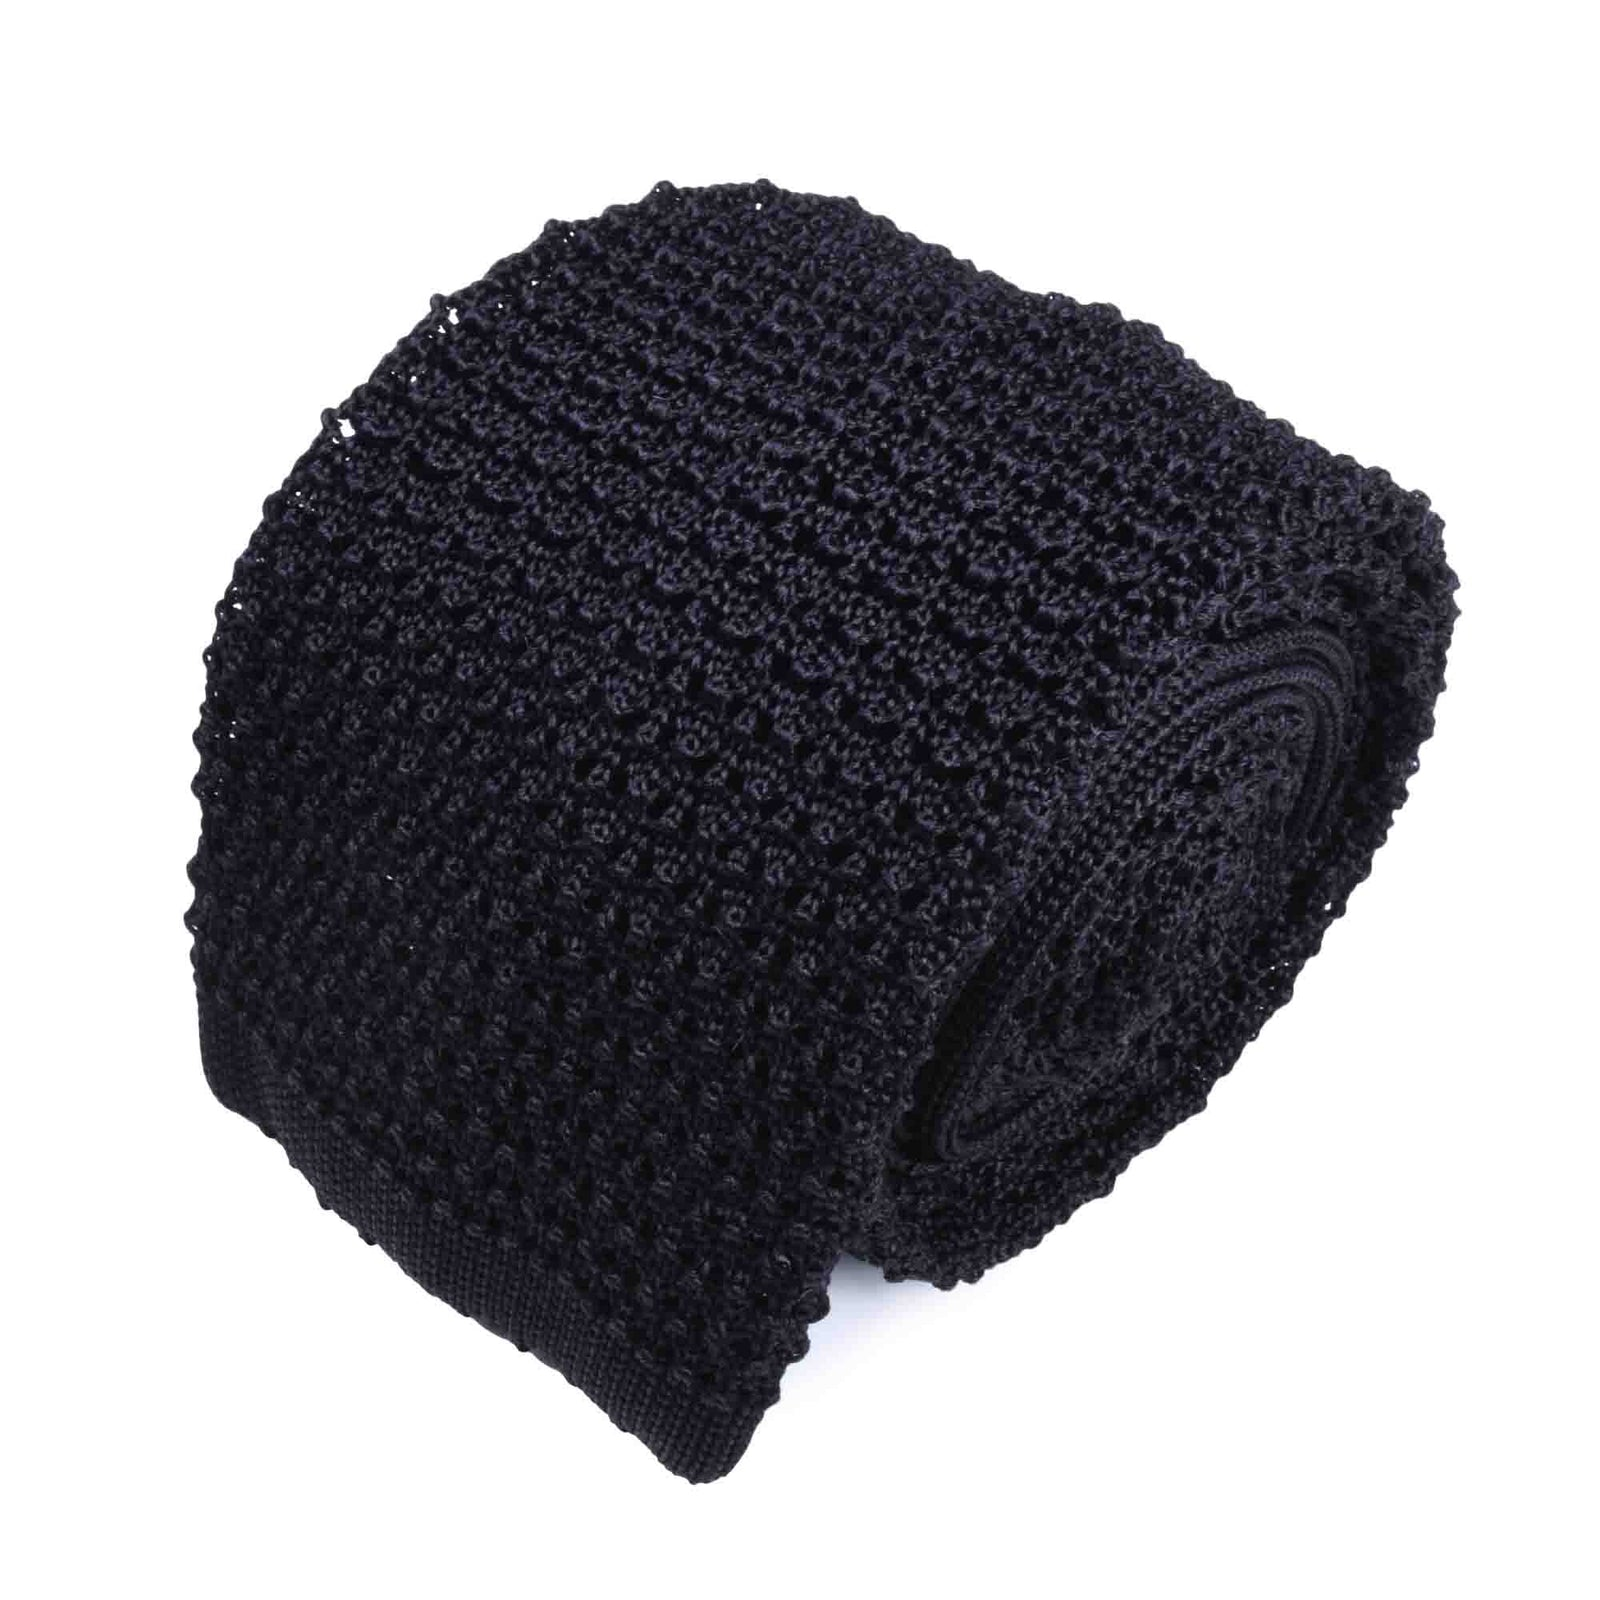 KNITTED CROCHET BLACK TIE